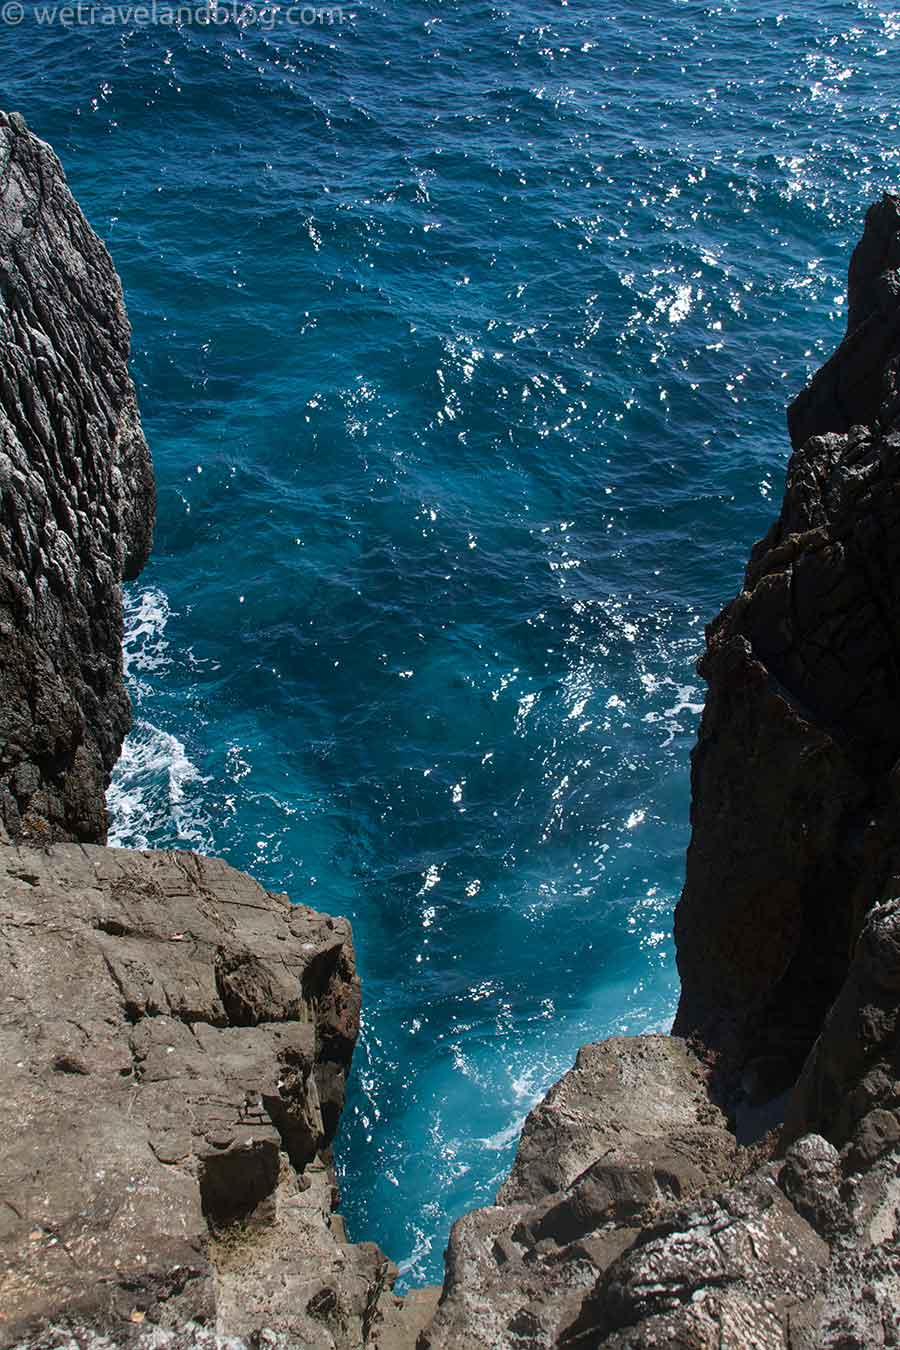 ... and this is the beautiful blue water below.